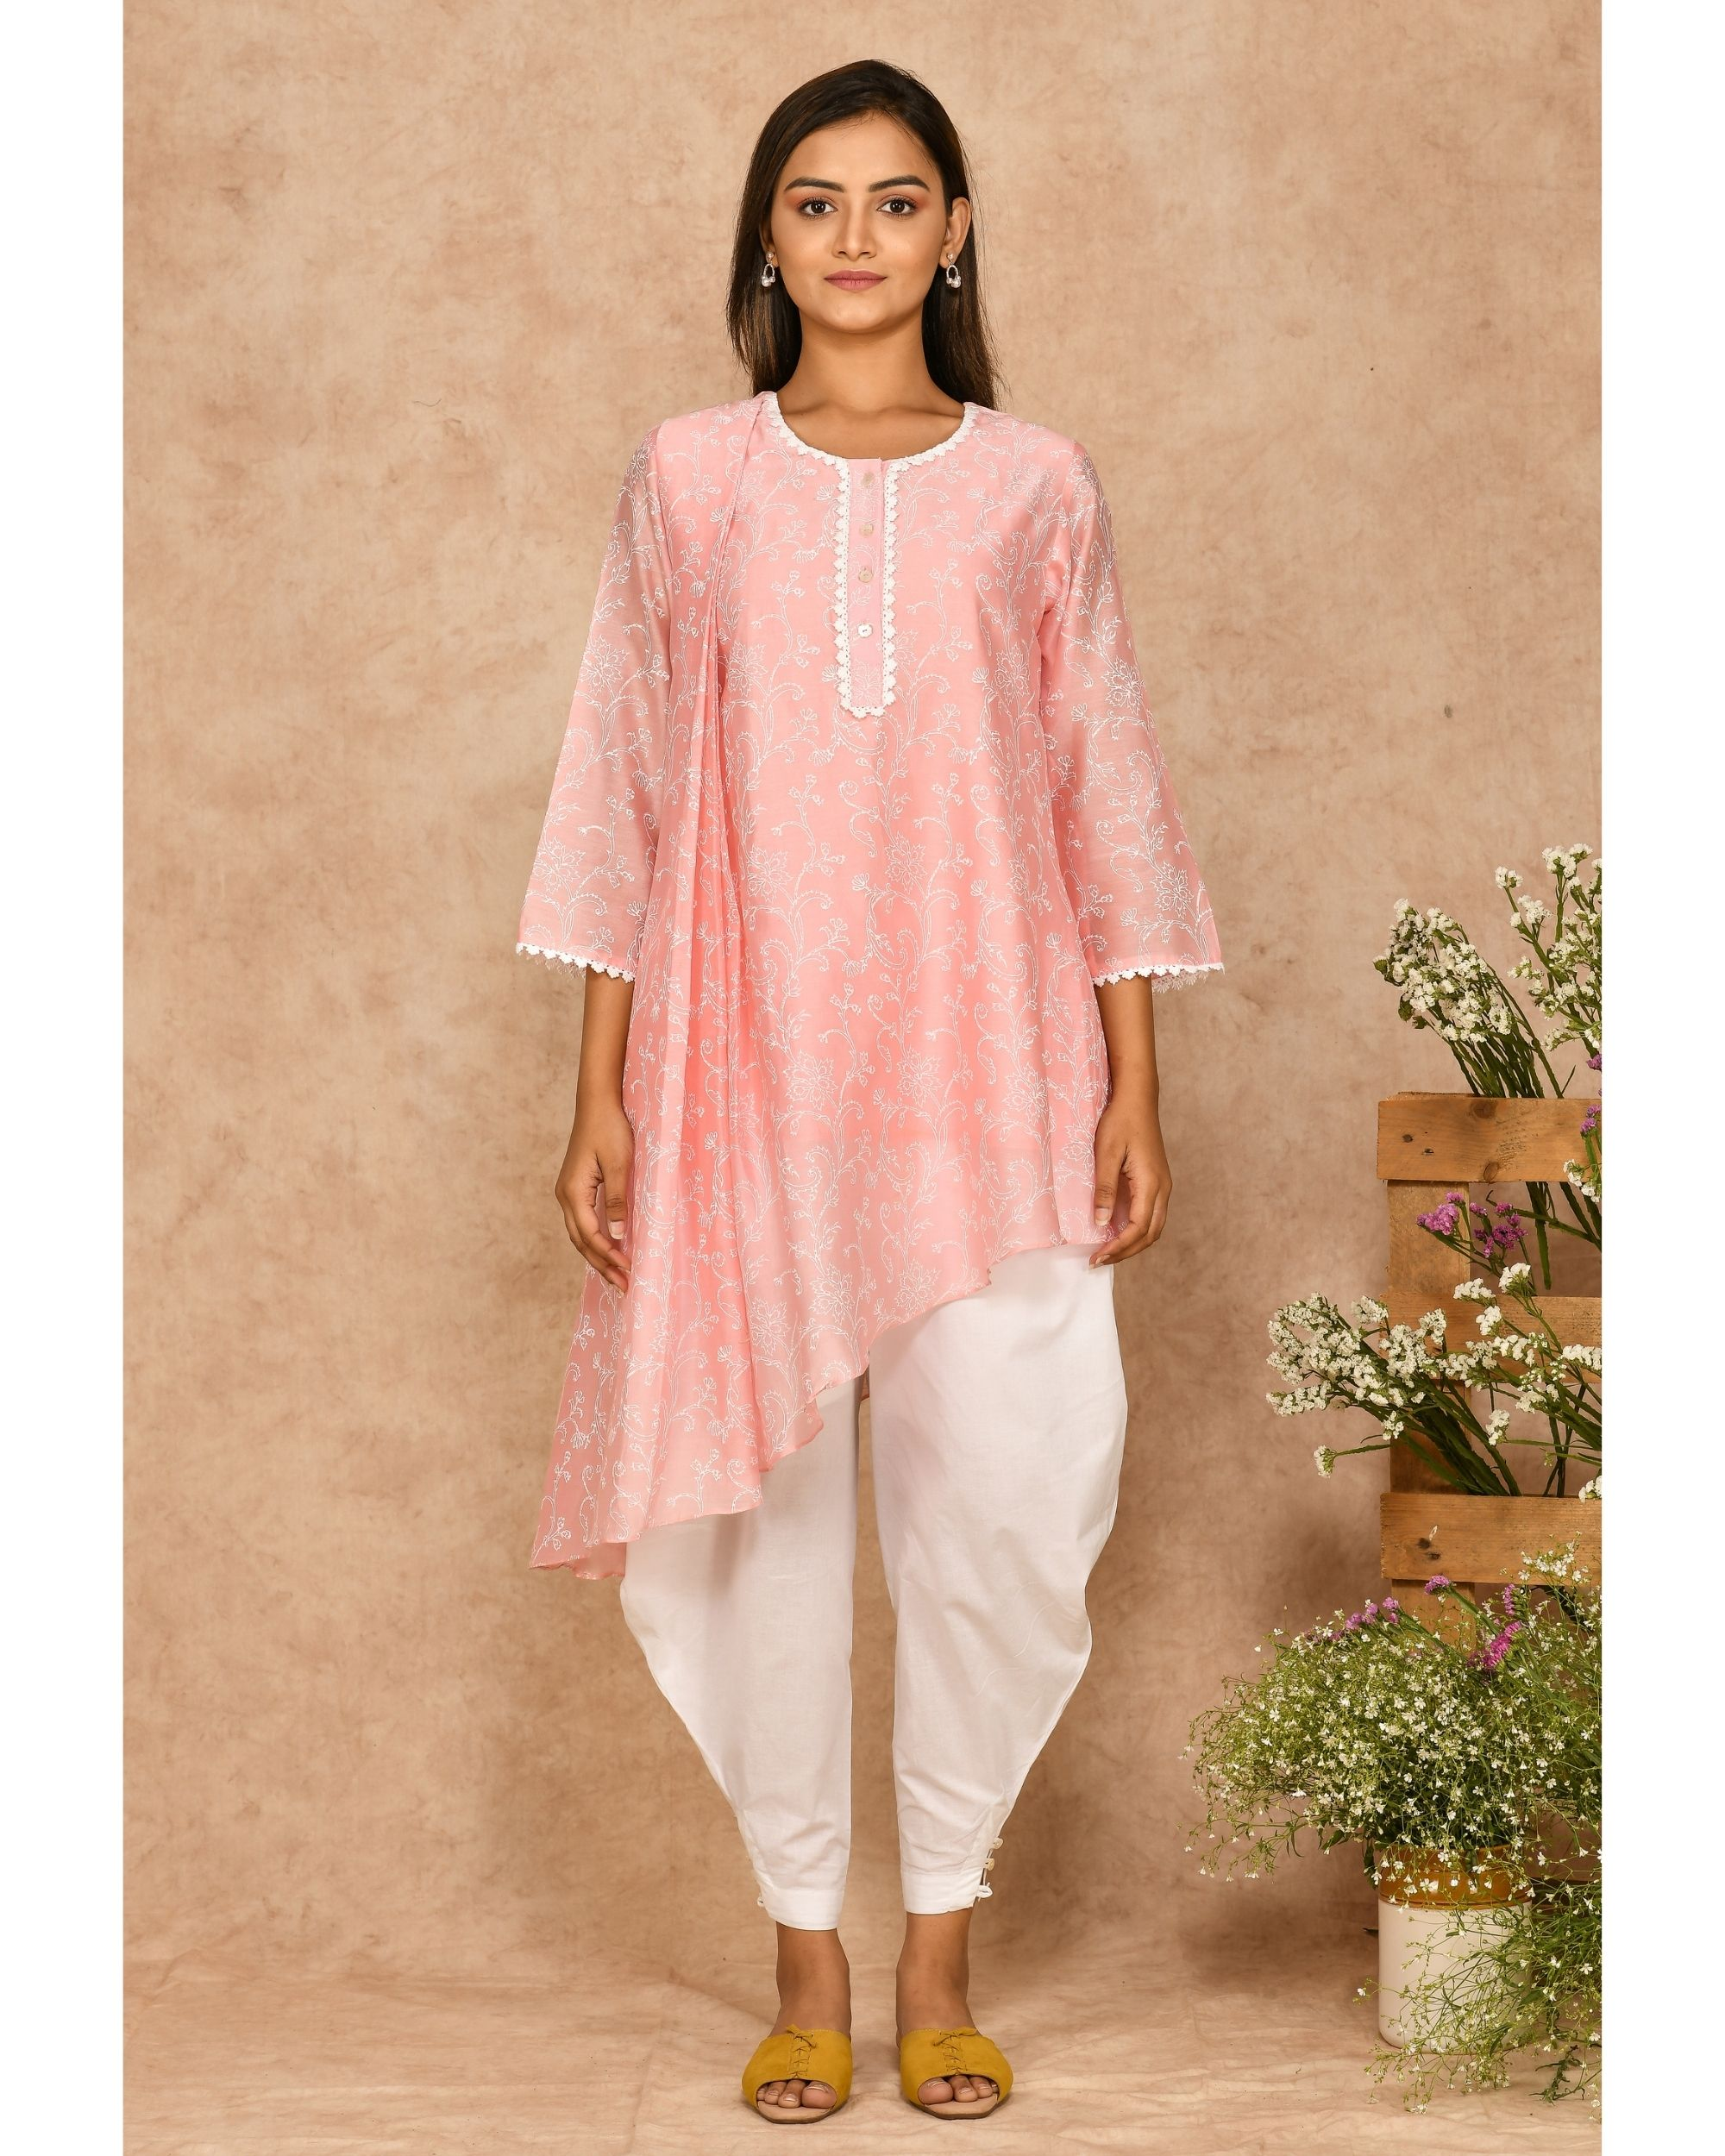 Pink and white hand block printed asymmetrical kurta with dhoti pants - set of two